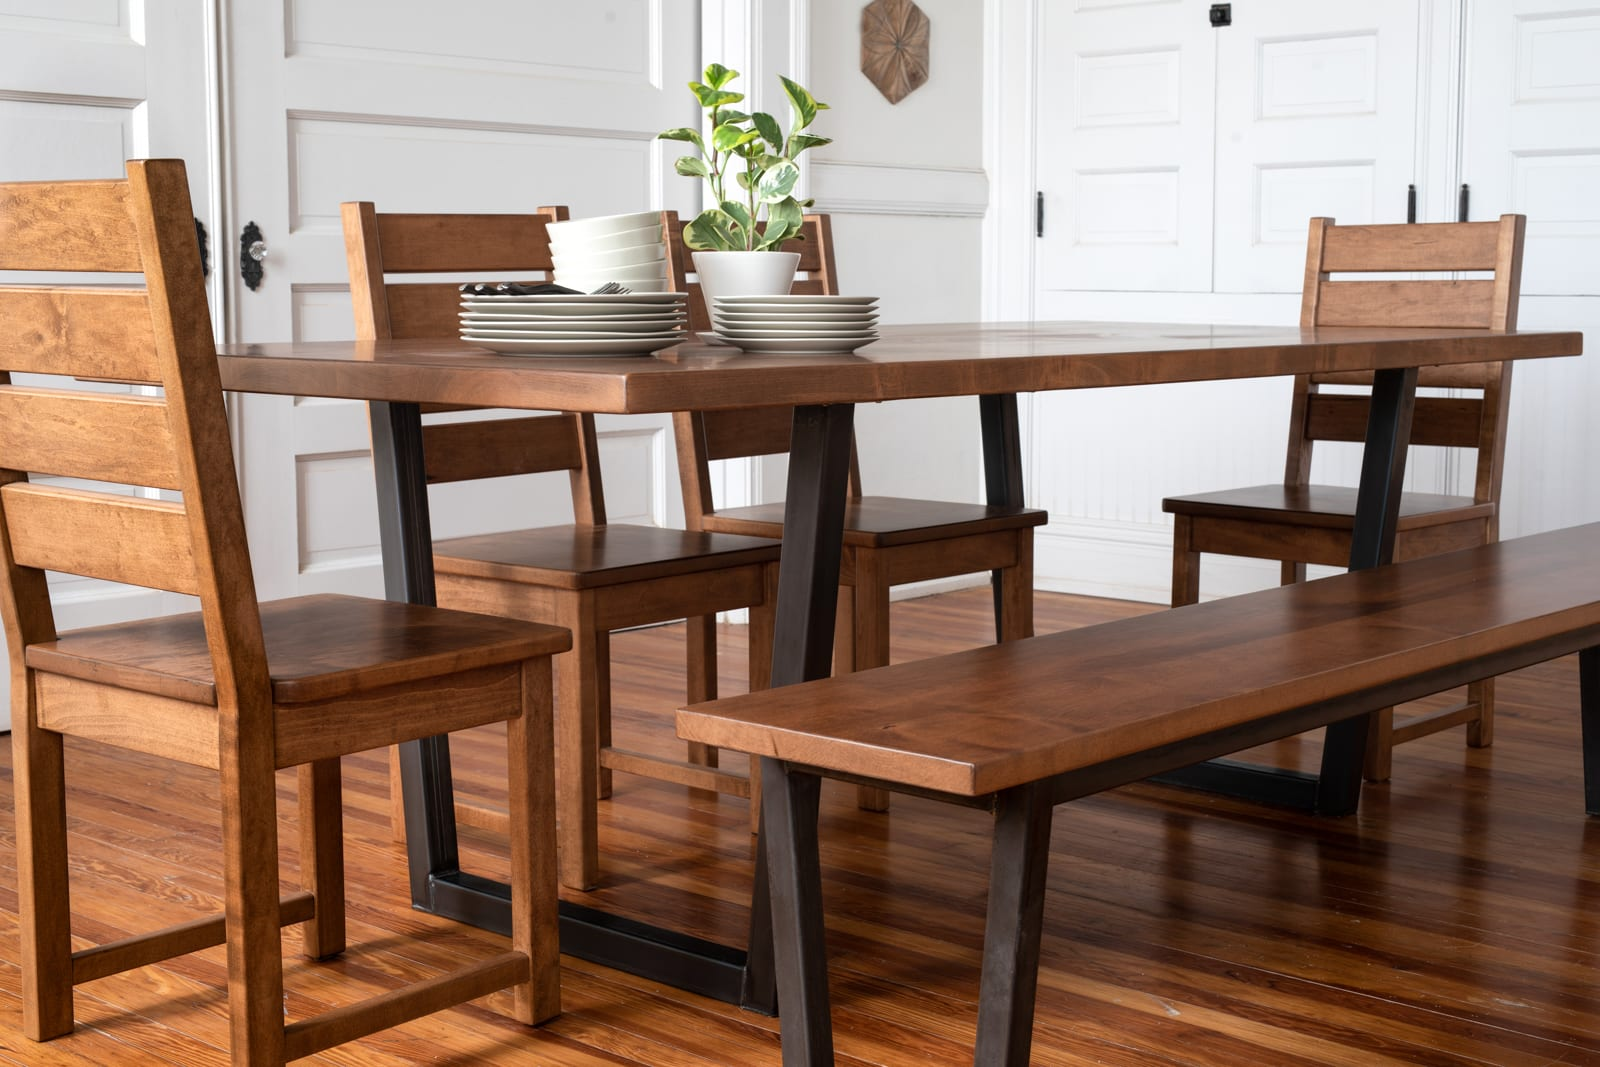 Modern industrial dining table set